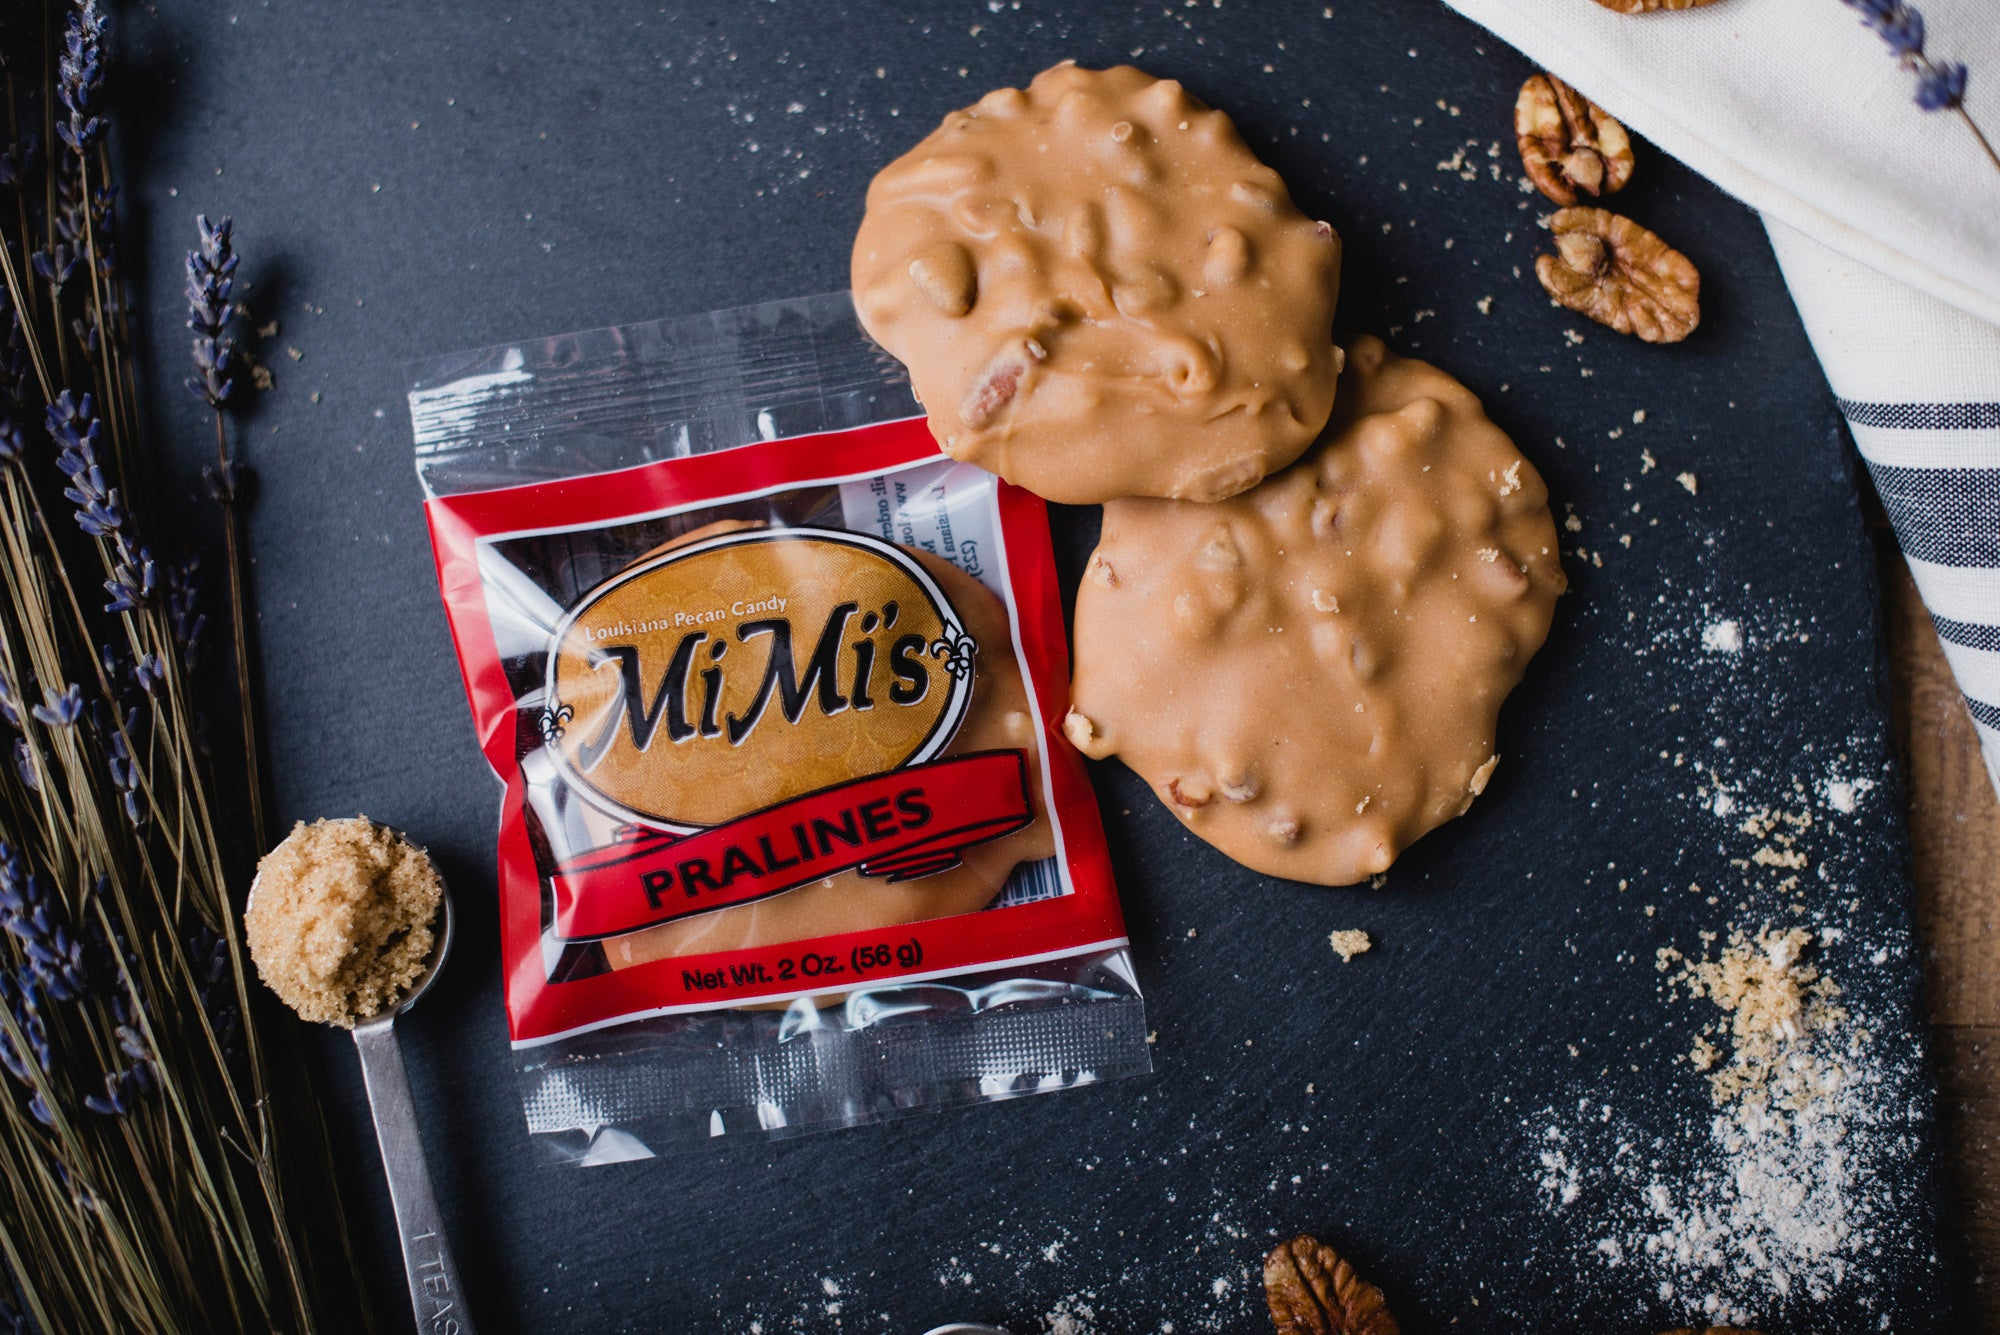 <a target='_blank' href='http://www.louisianapralinecompany.com/index.php?route=information/information&information_id=4